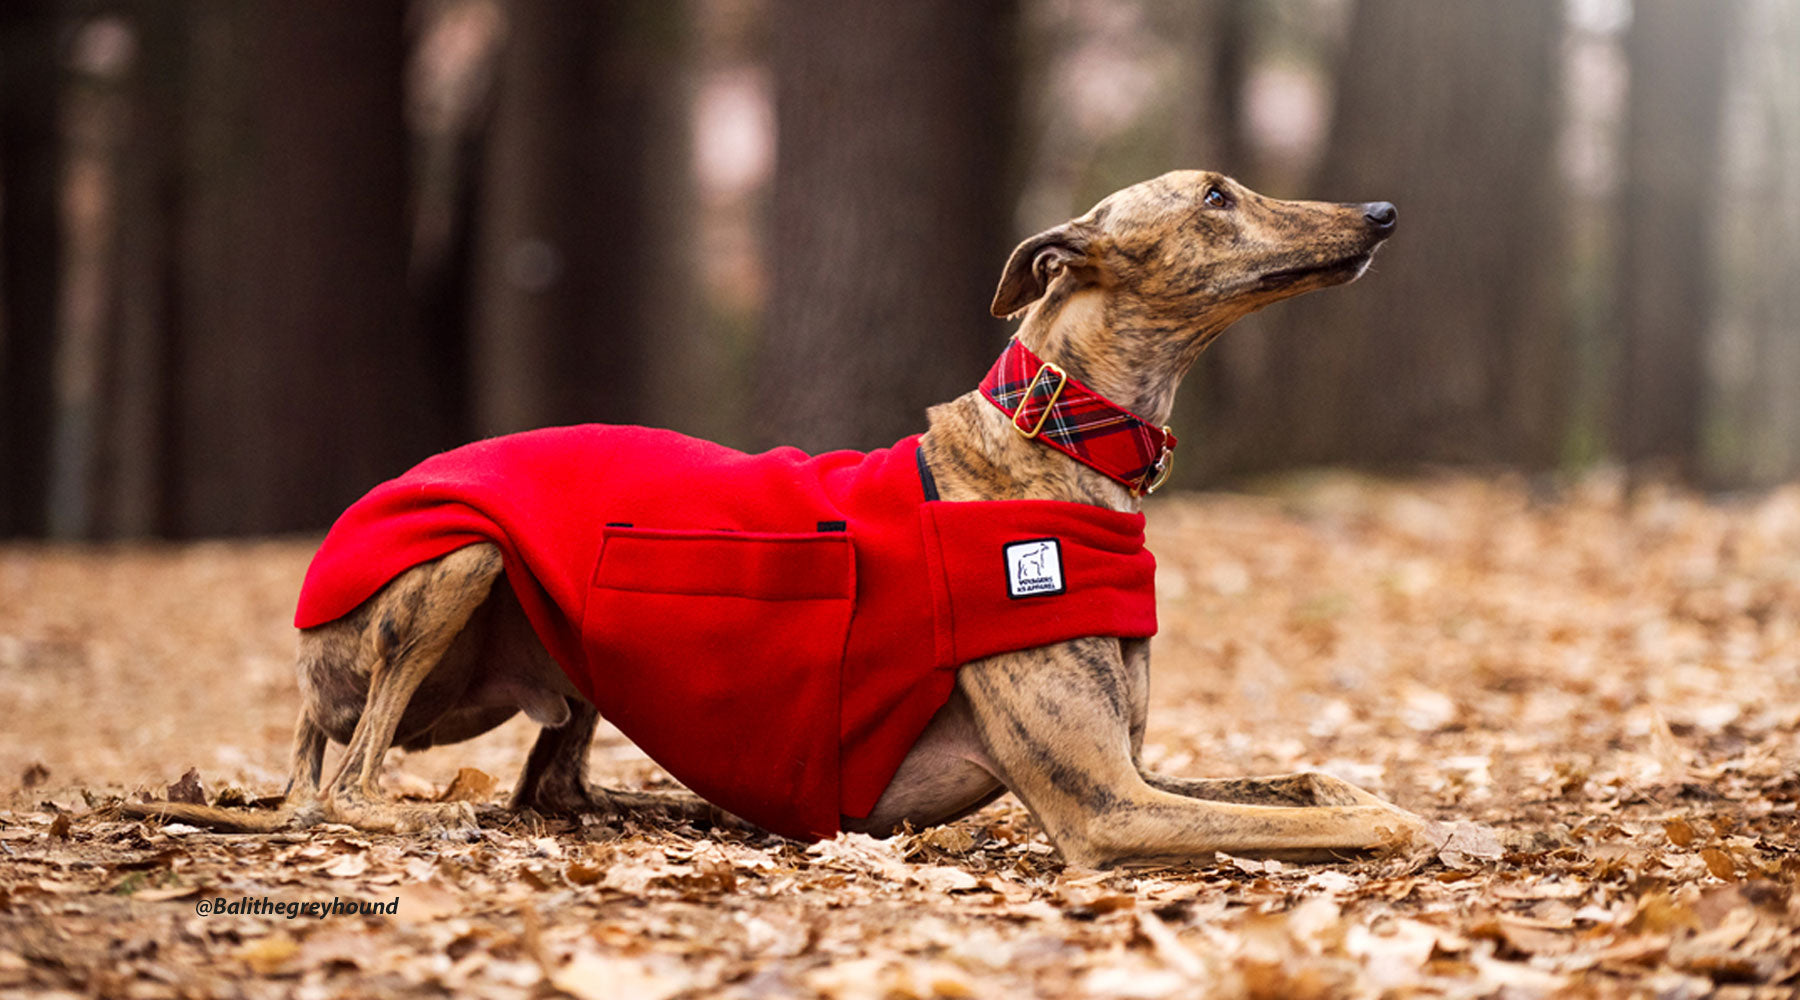 Bali the Greyhound is warm and ready for action in this Voyagers K9 Apparel snug-fitting tummy warmer. (@balithegreyhound)